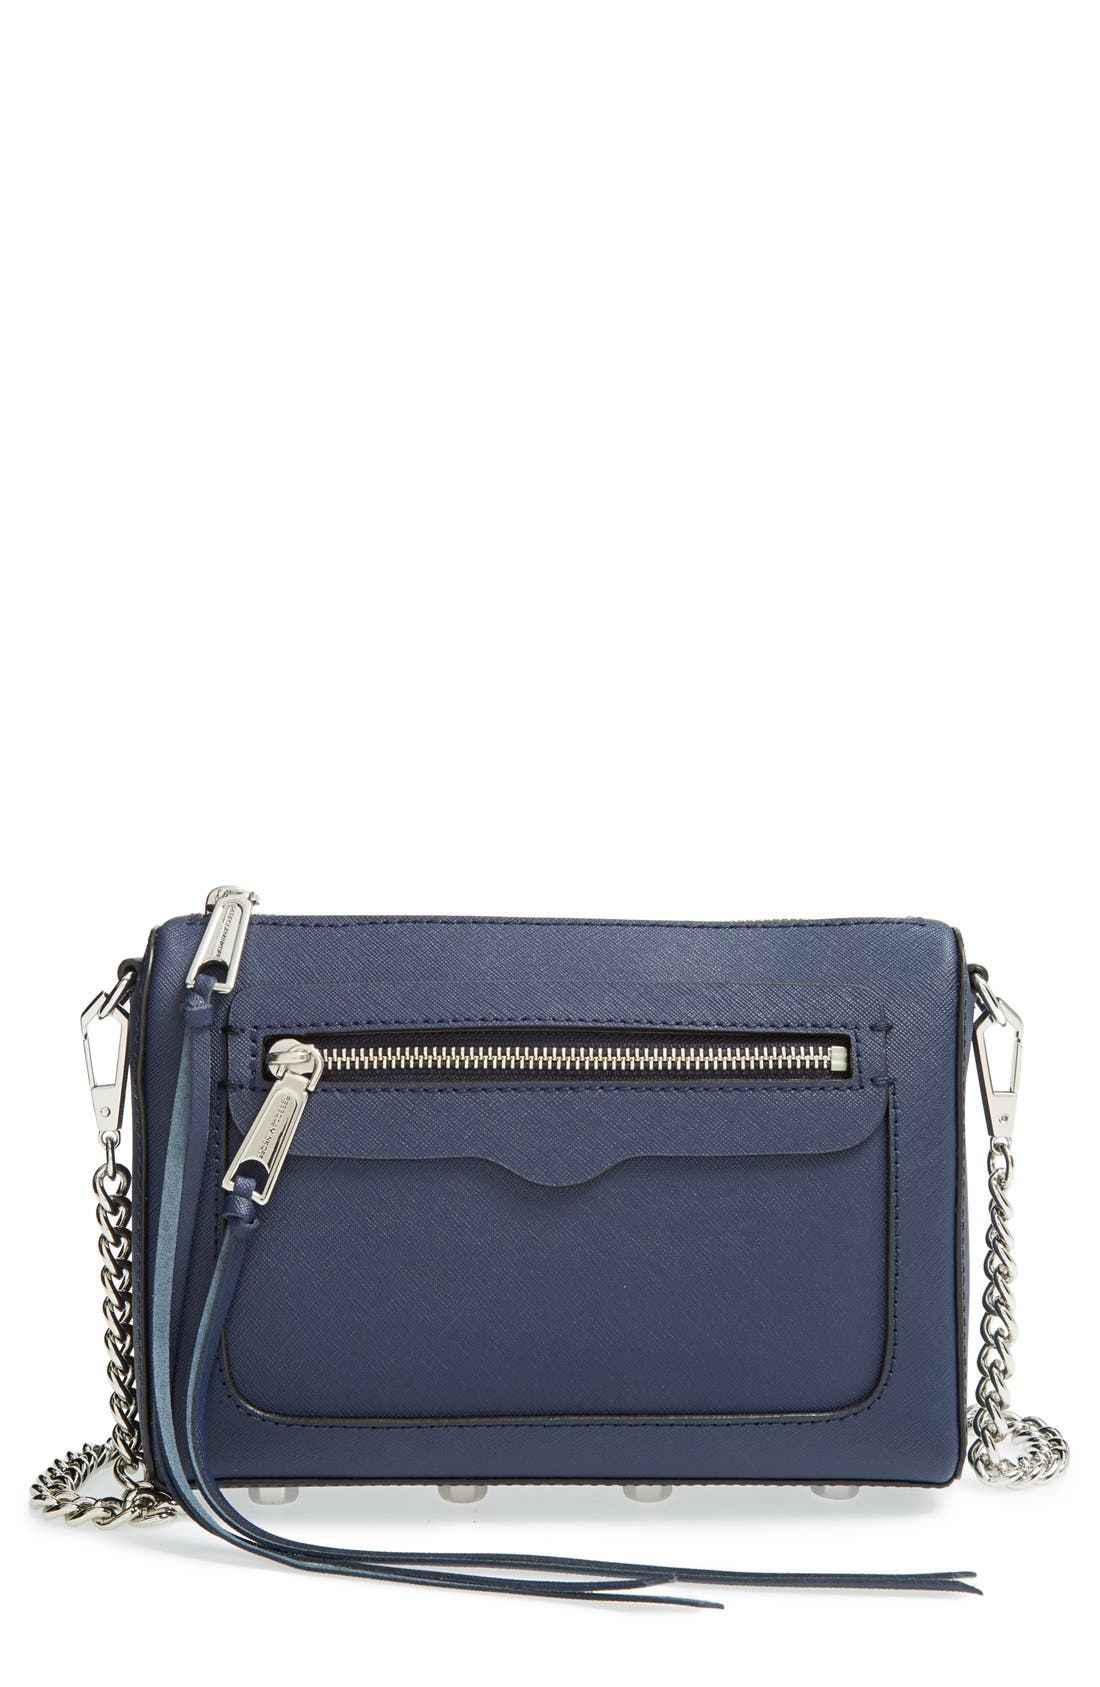 Alternate Image 1 Selected - Rebecca Minkoff 'Avery' Crossbody Bag